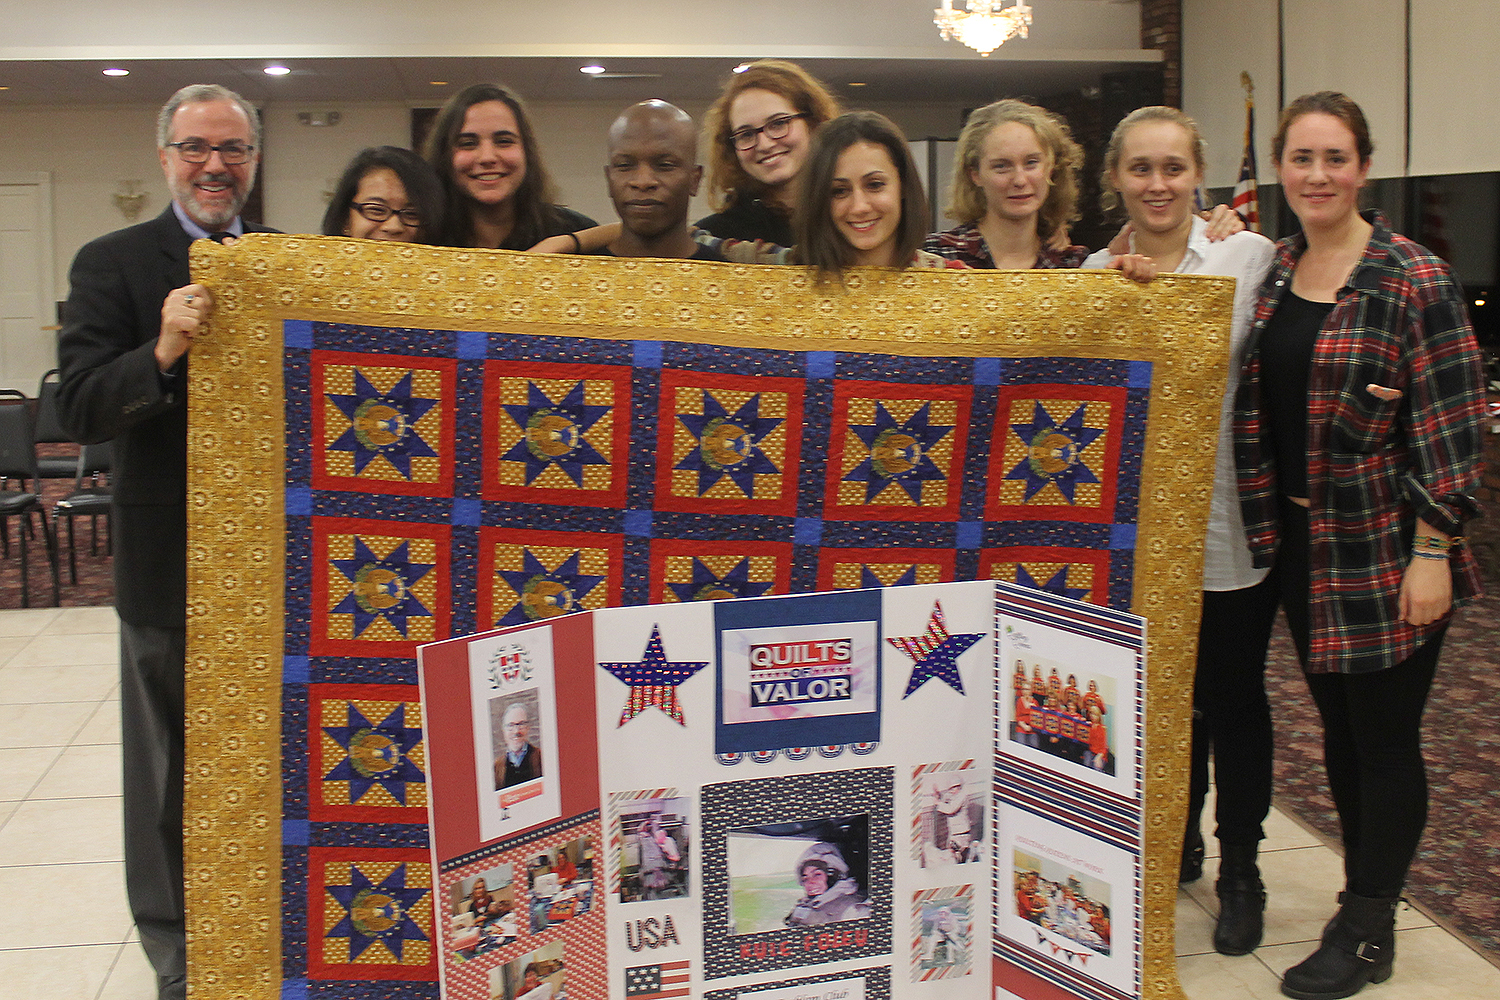 Kyle Foley '18 received a Quilt of Valor Dec. 3 at the Emblem Club in Middletown. She's pictured here with several Wesleyan students and at left, Professor Andy Szegedy-Maszak.